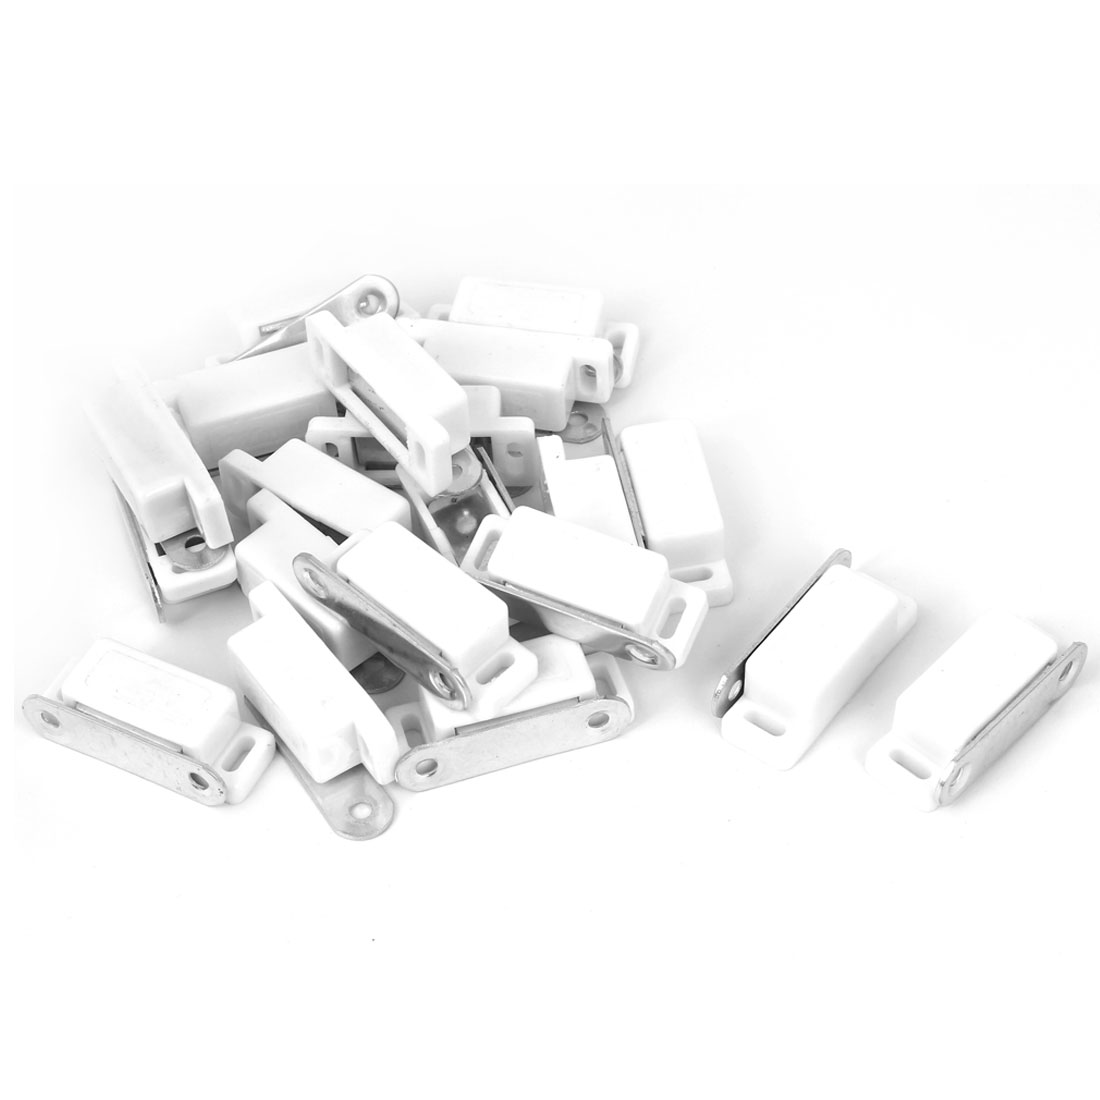 46mmx15x14mm Cabinet Door Stopper Magnetic Catch Stop Self-Aligning Magnet 20pcs